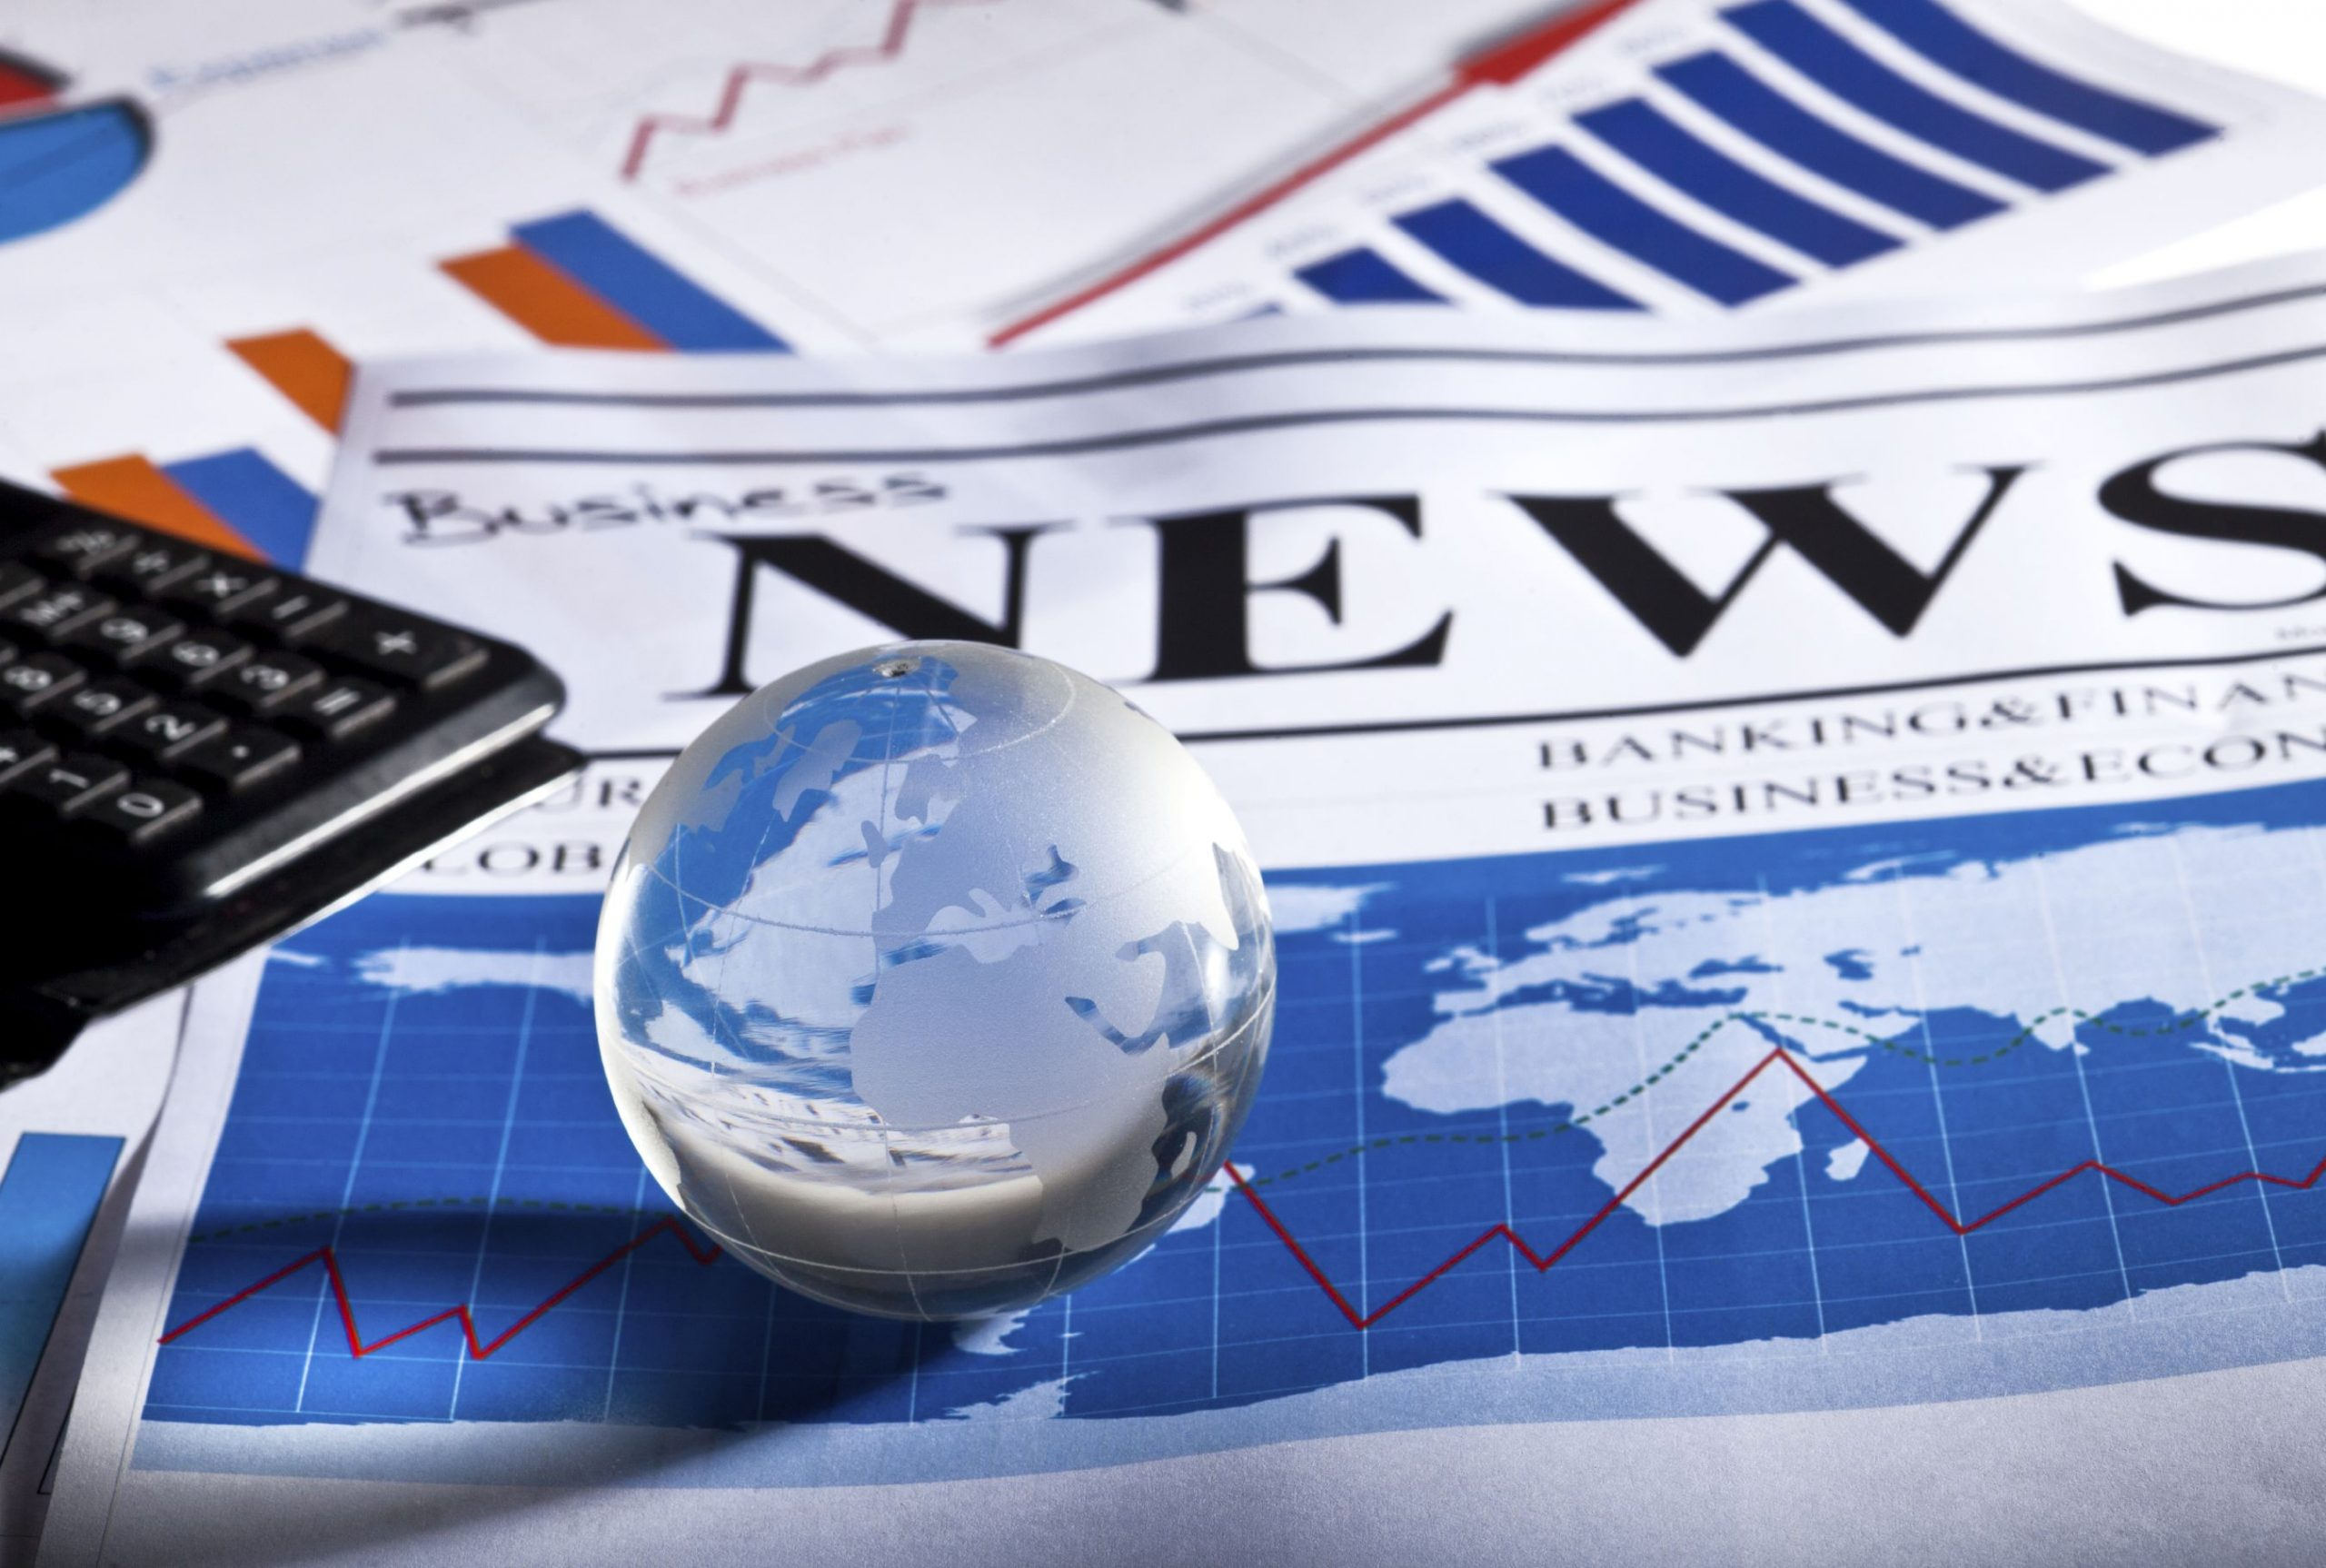 Bringing Global Investors Together, Forex News Online